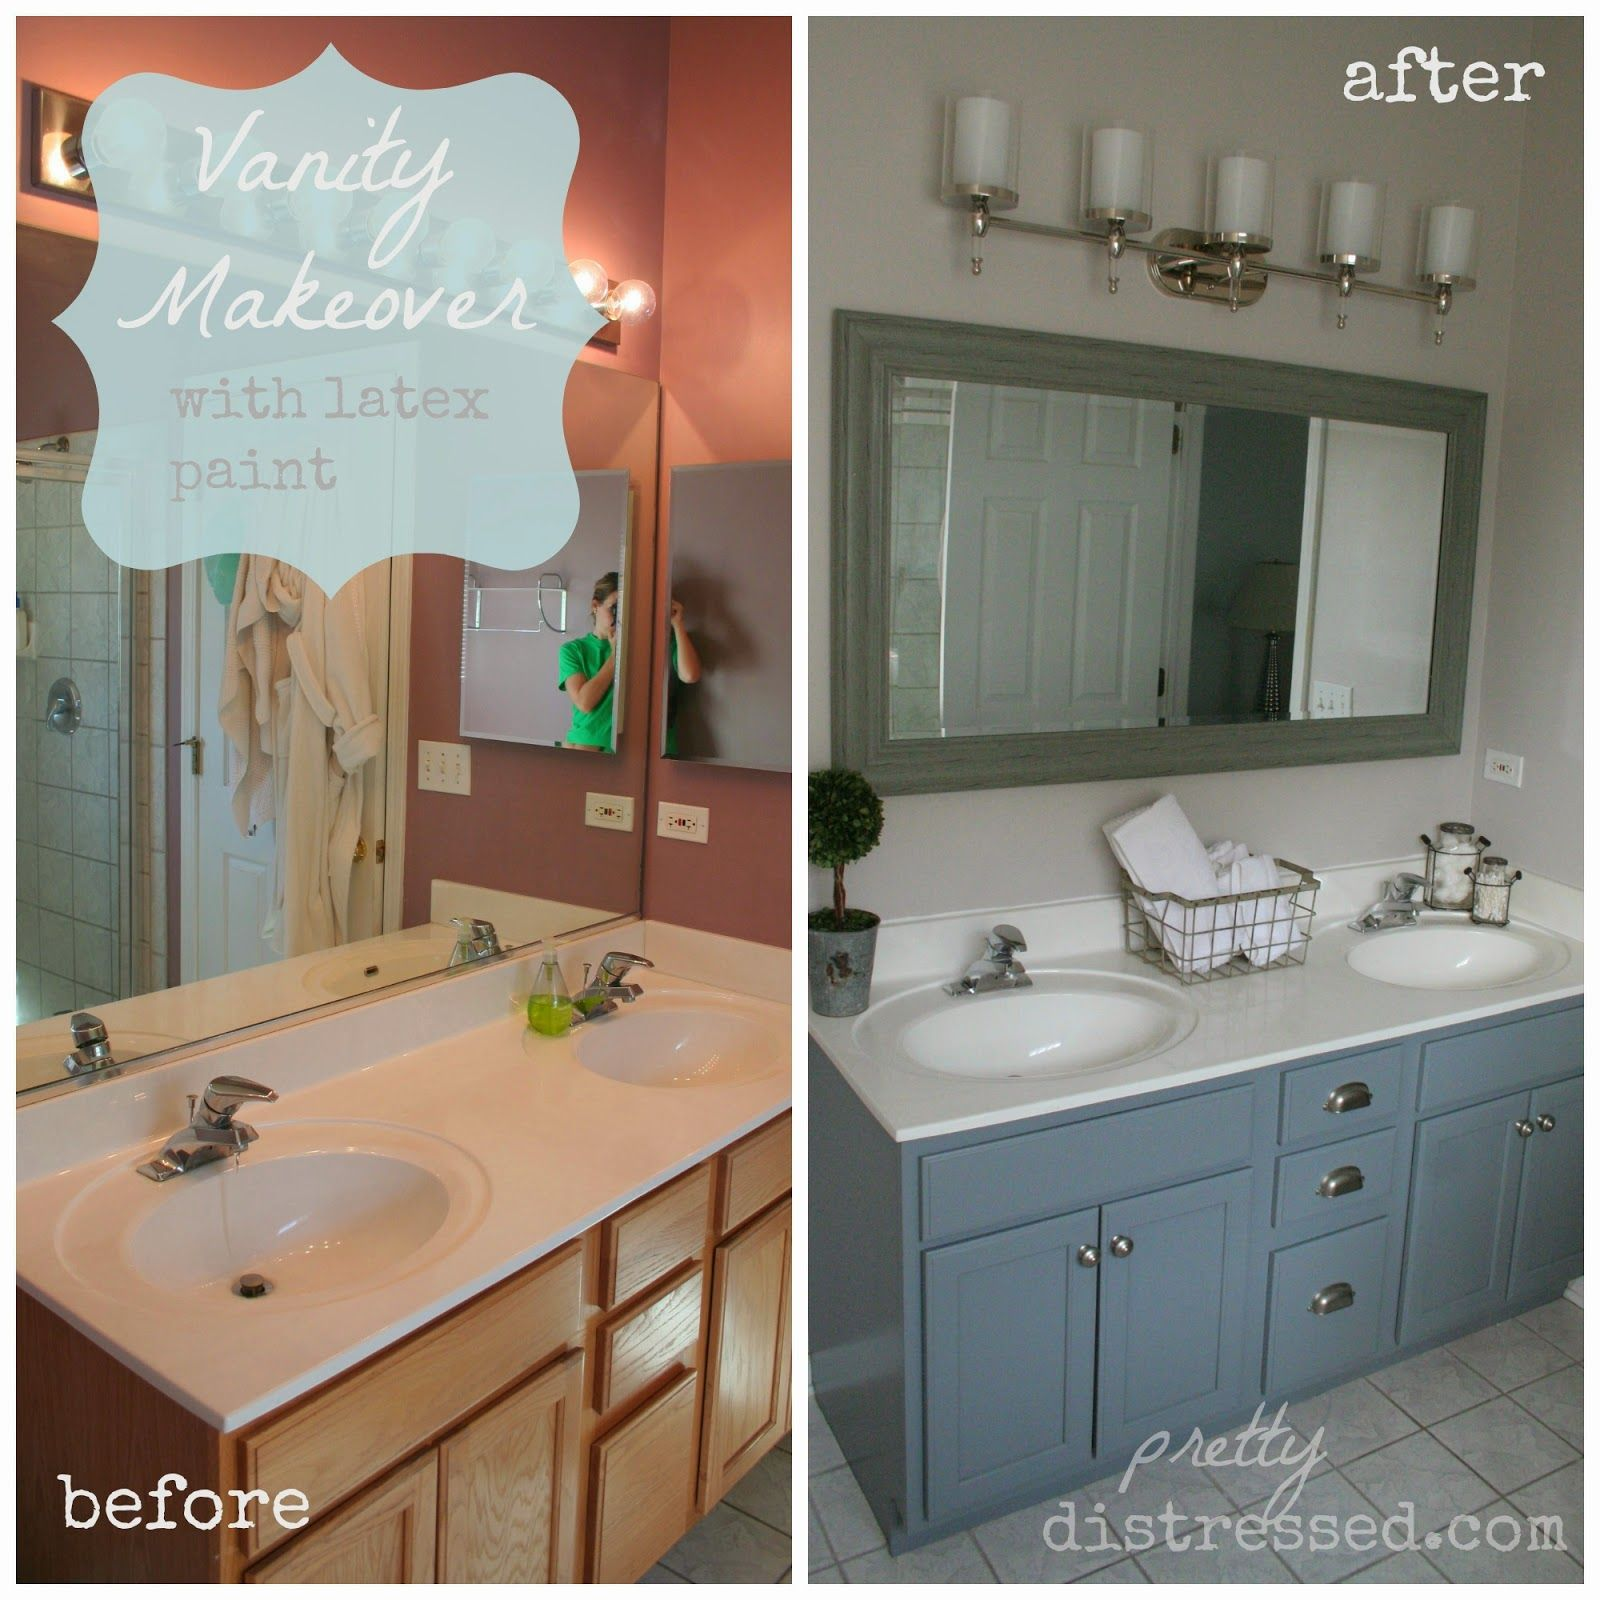 Bathroom Makeover Vanity it's a bathroom makeover on a budget. christina muscari of pretty